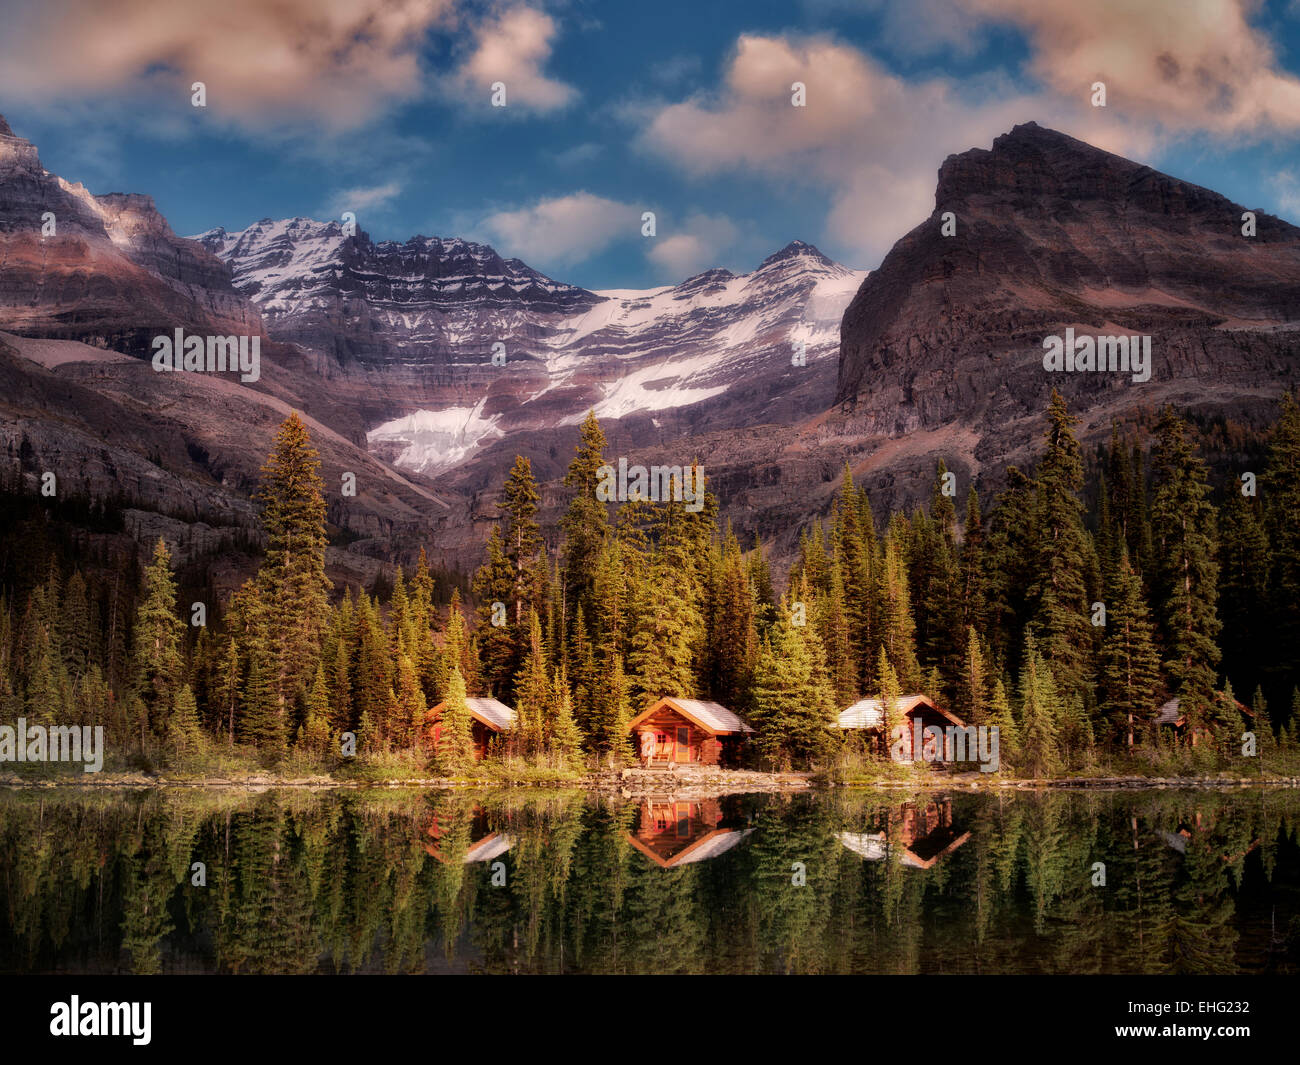 Umkleidekabinen am Lake O'hara. Yoho National Park, Opabin Plateau, British Columbia, Kanada Stockbild